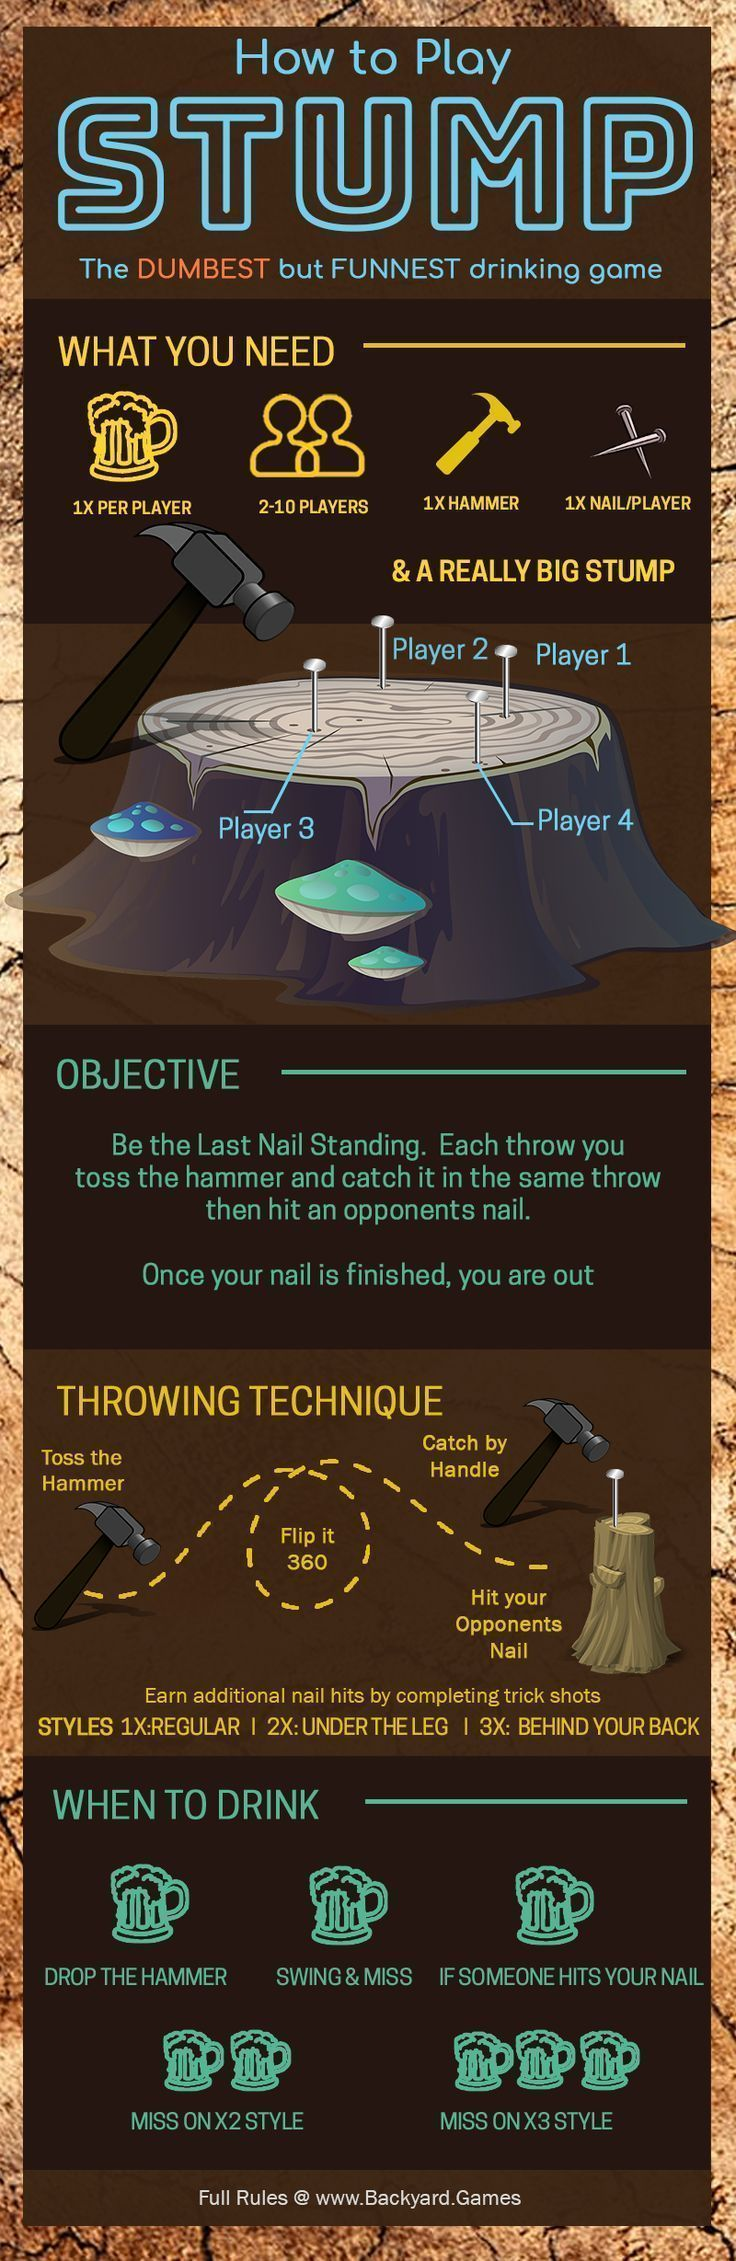 19+ Axe throwing game rules collection